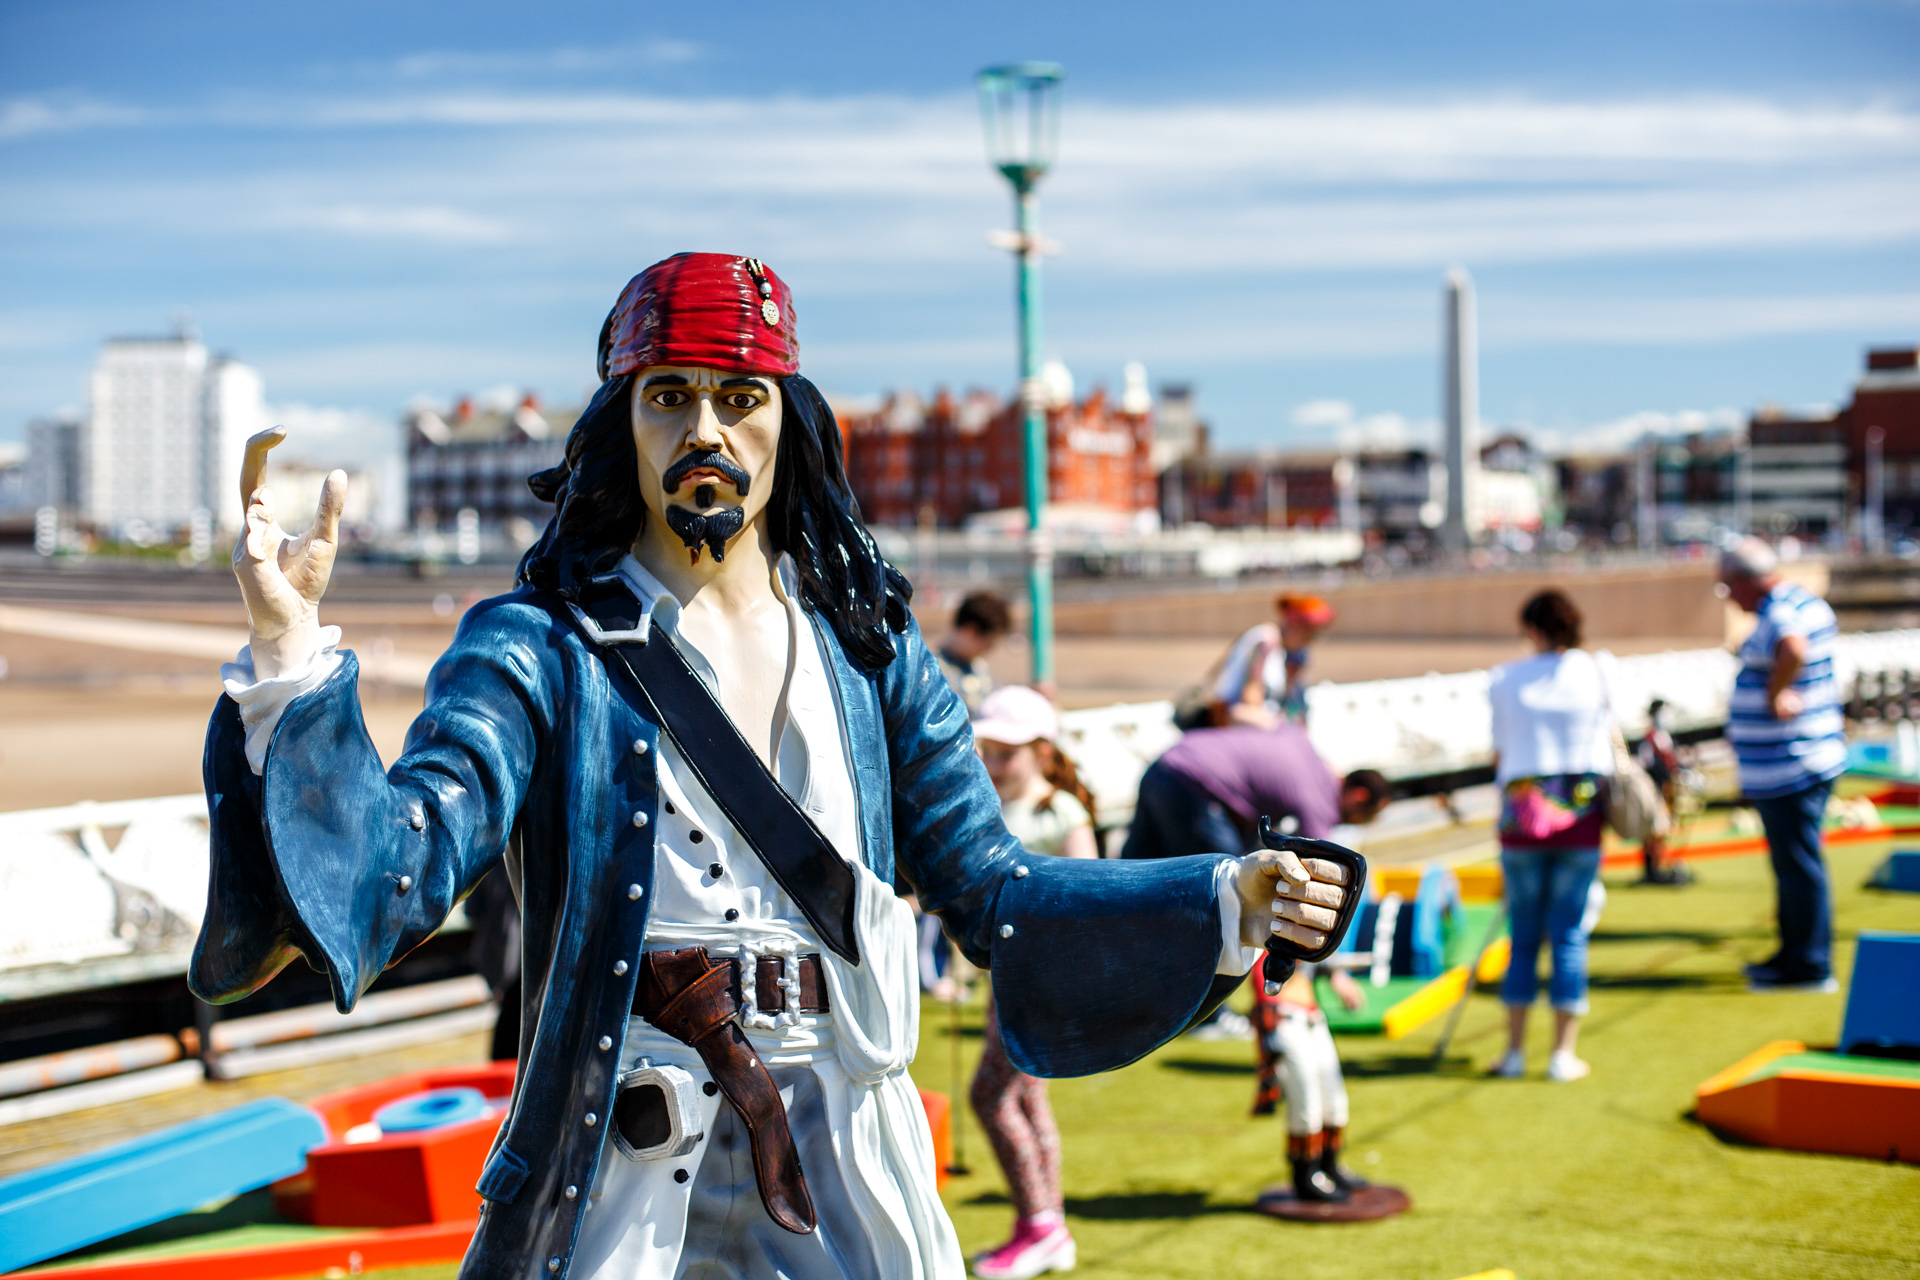 August - I took a day trip to  Blackpool  with a few friends for a project. Here's a Jack Sparrow-a-like at a mini golf course. He's missing his sword and a few fingers...I wonder what happened to him?!